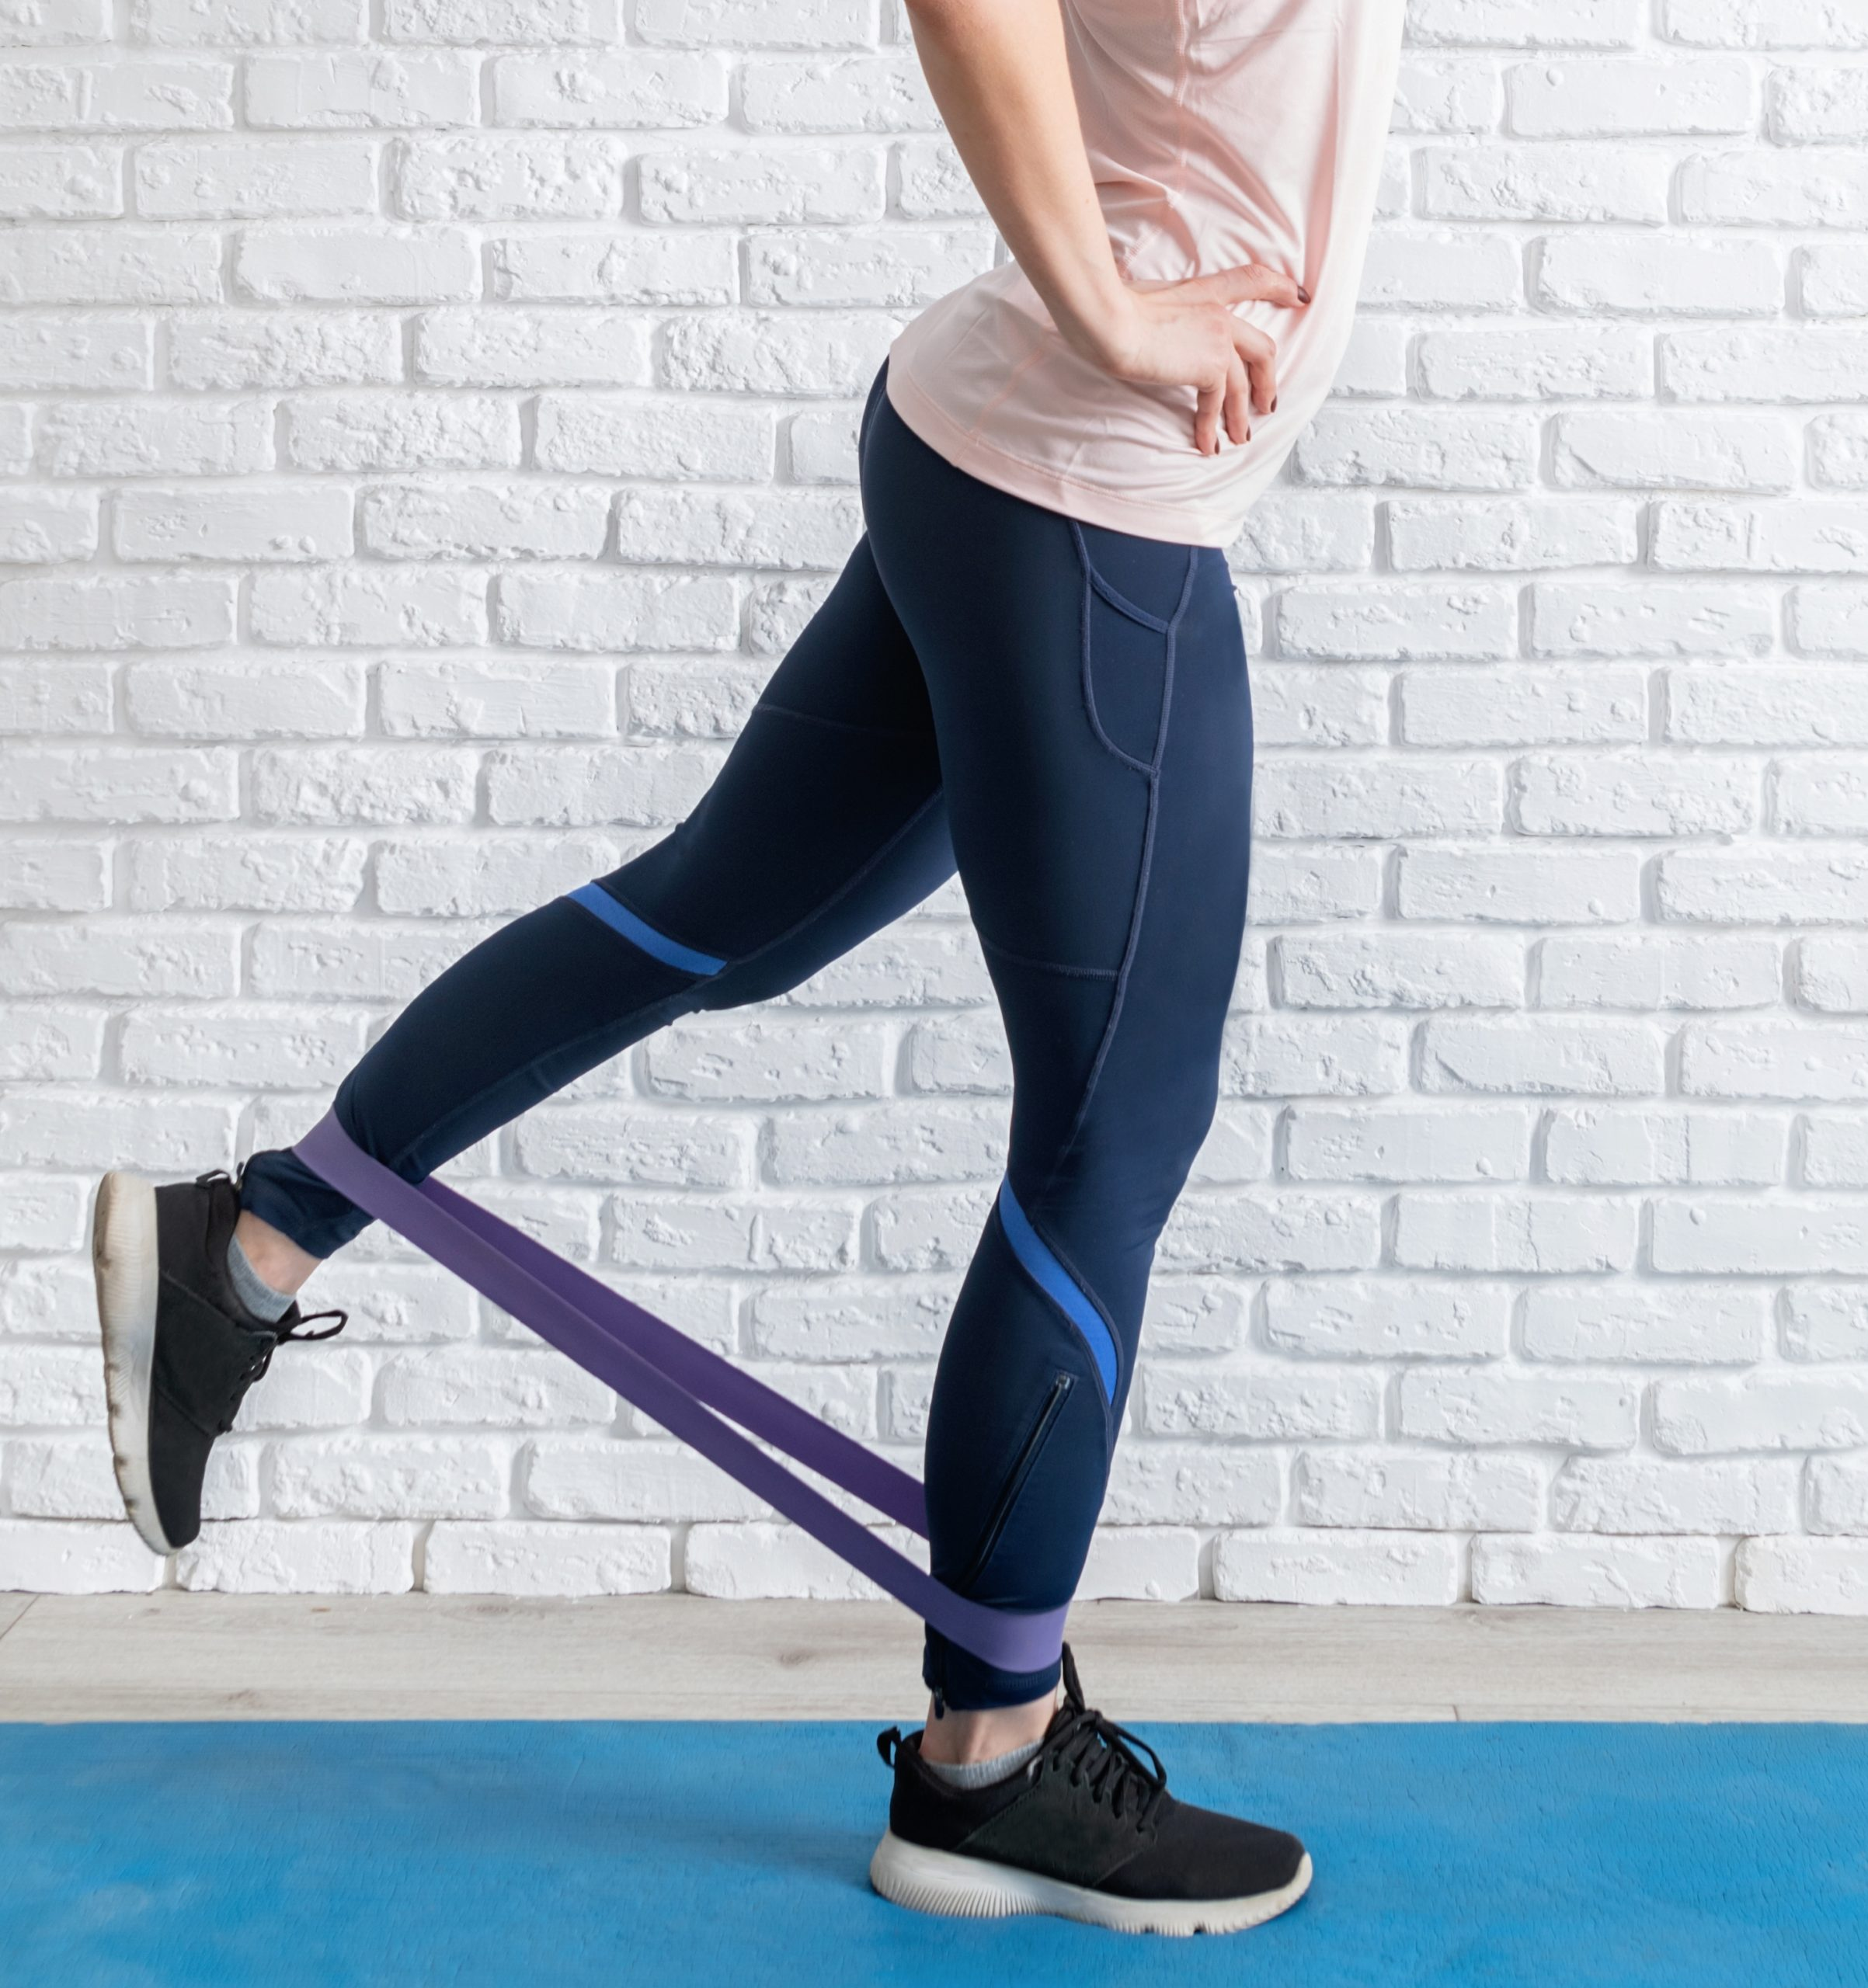 Stay home. Home fitness. A woman exercising legs at home using rubber resistance band